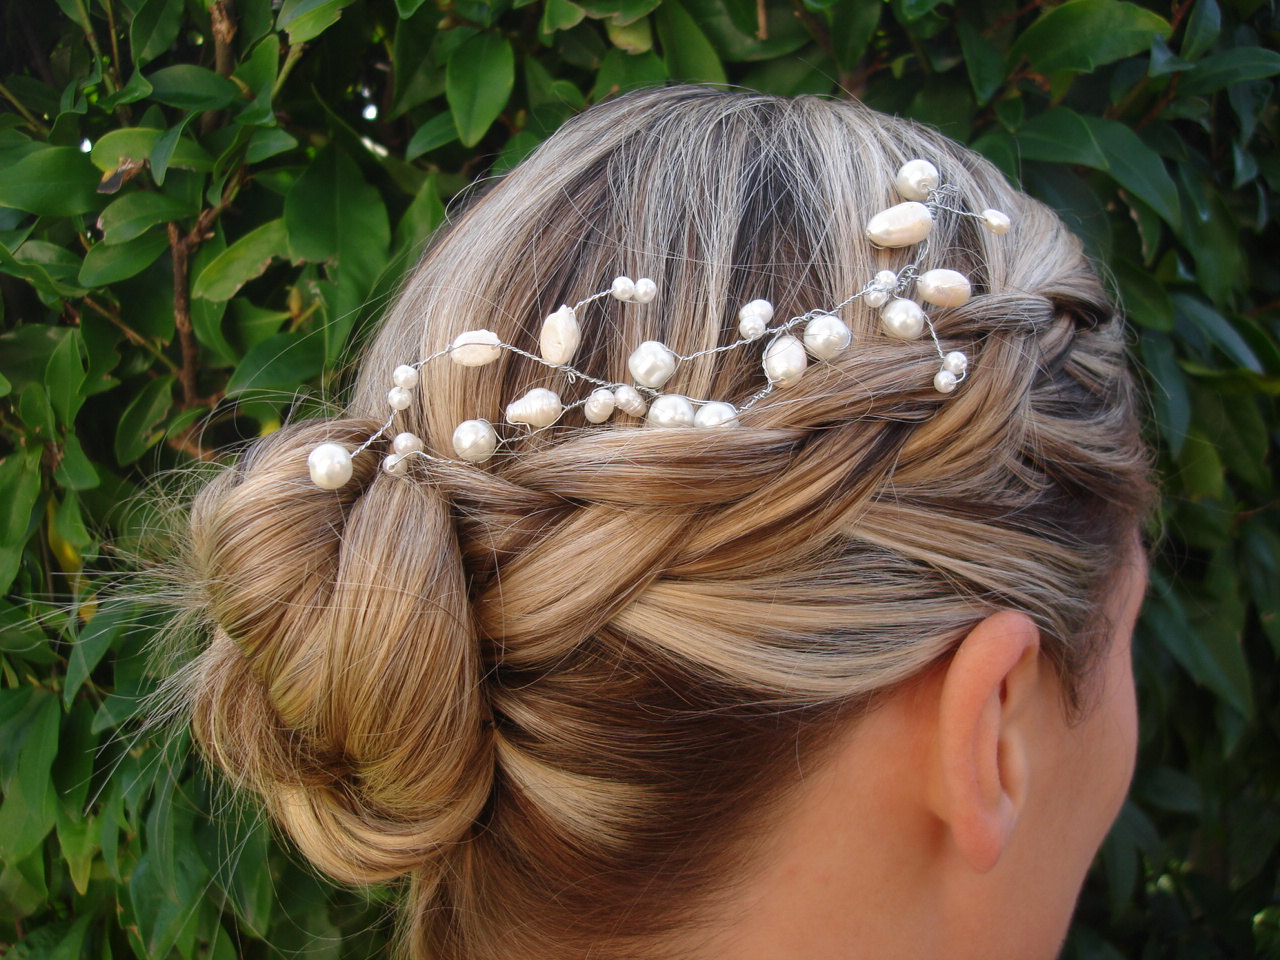 braided-wedding-hairstyle.original.jpg?1379180711